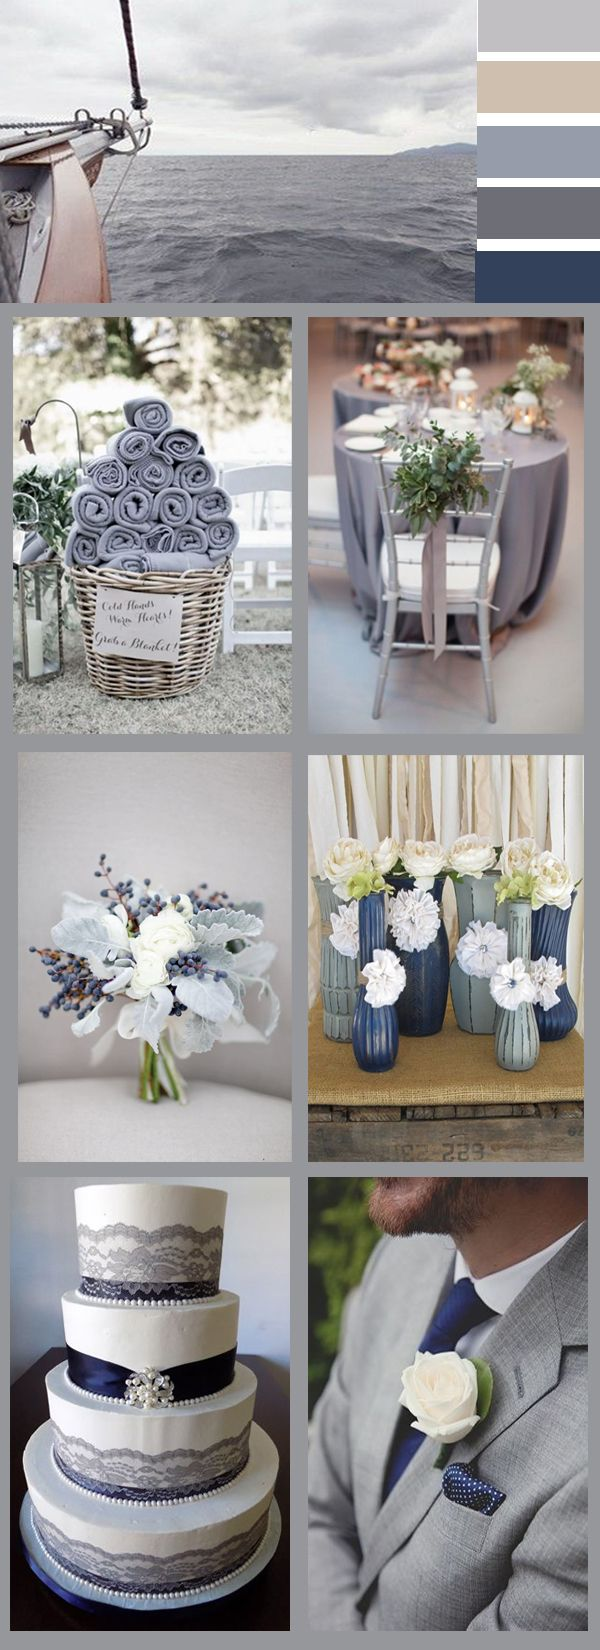 grey wedding color ideas for 2017 trends